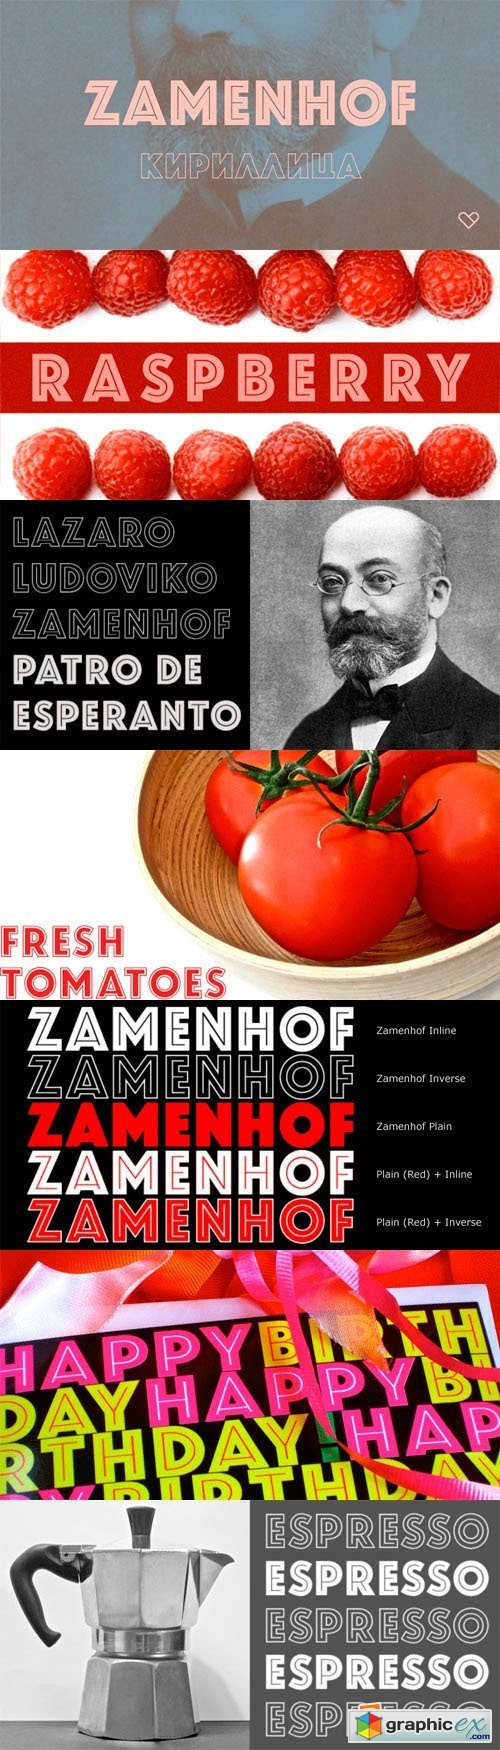 Zamenhof Font Family - 4 Fonts for $99